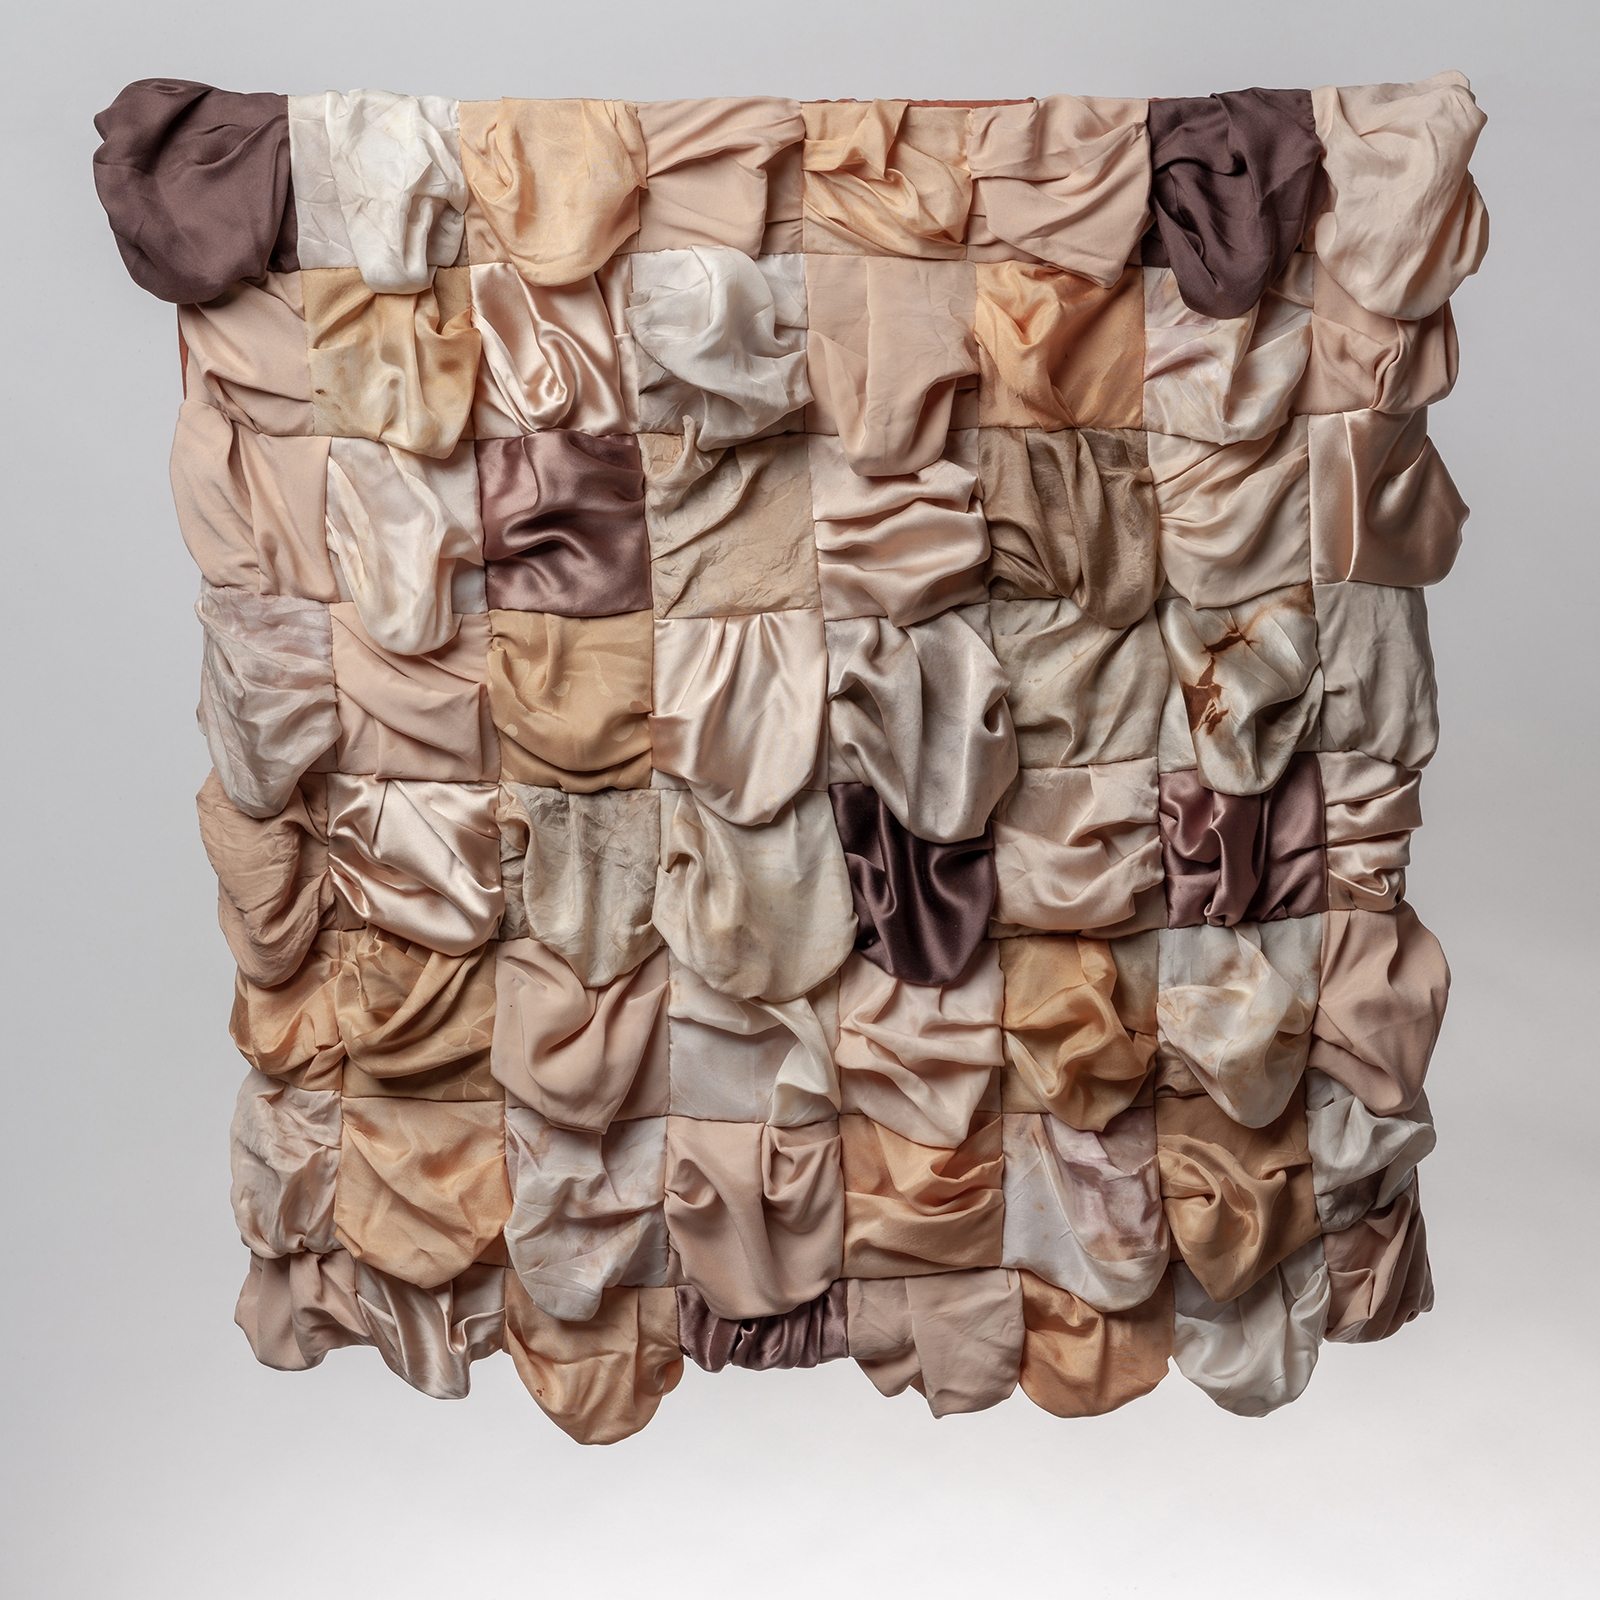 Textile quilt made from various flesh coloured silks, made to sag and drape